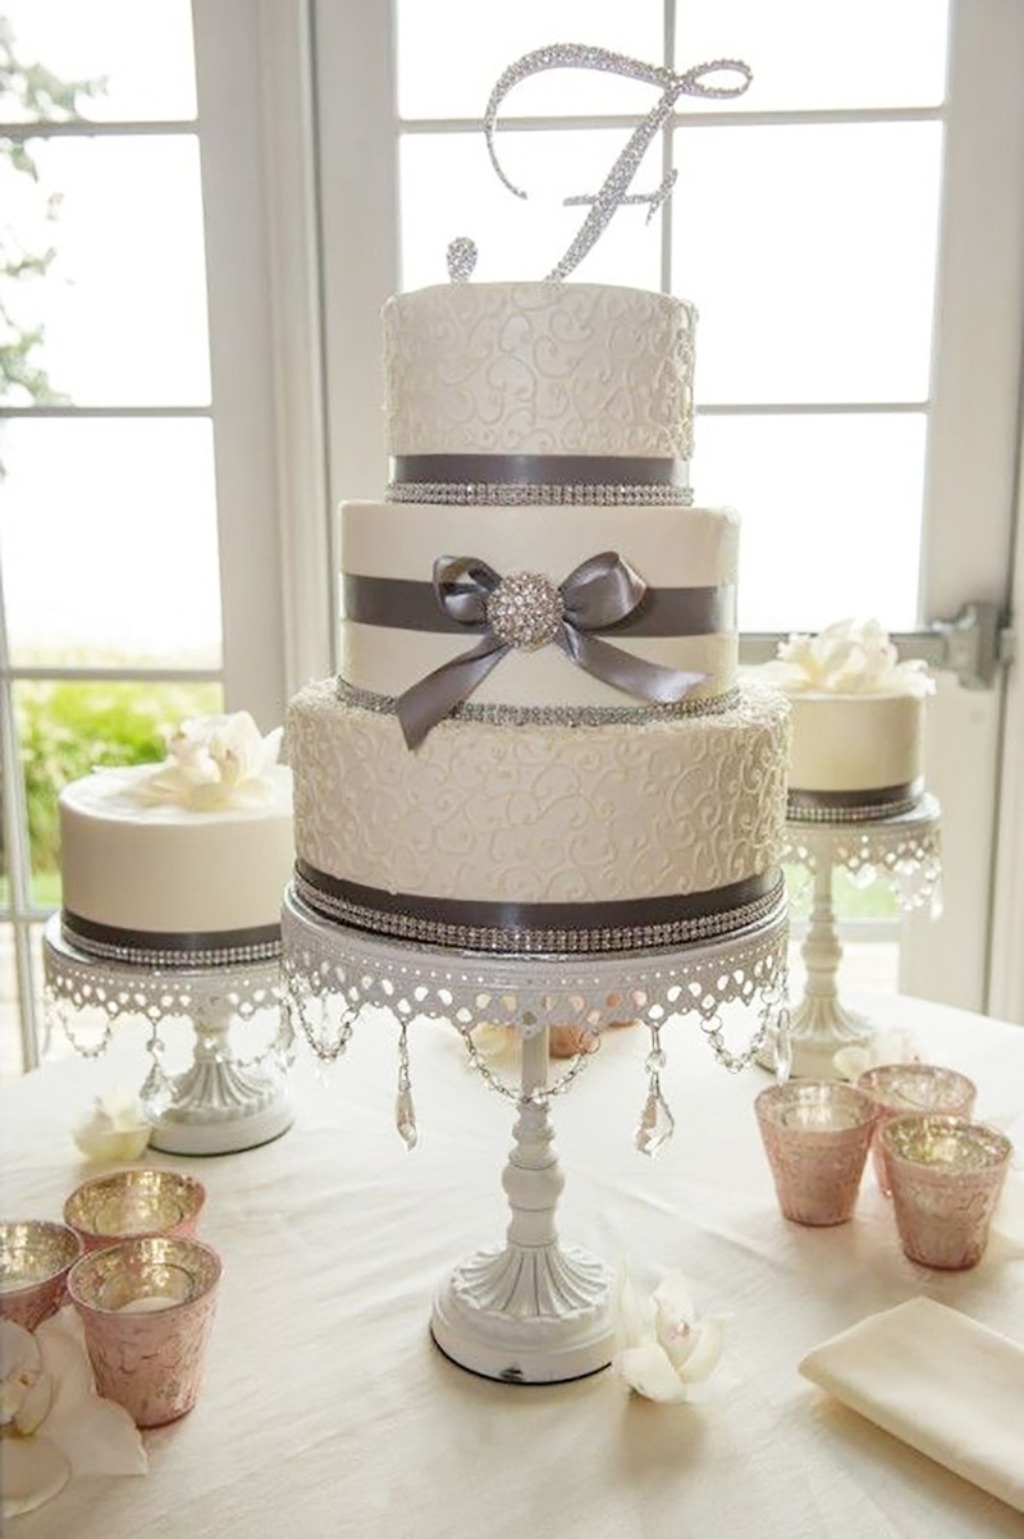 Shades of grey ribbon with sparkle on white tiered wedding cake. Opulent Treasures white cake stands with chandelier accents. Opulent